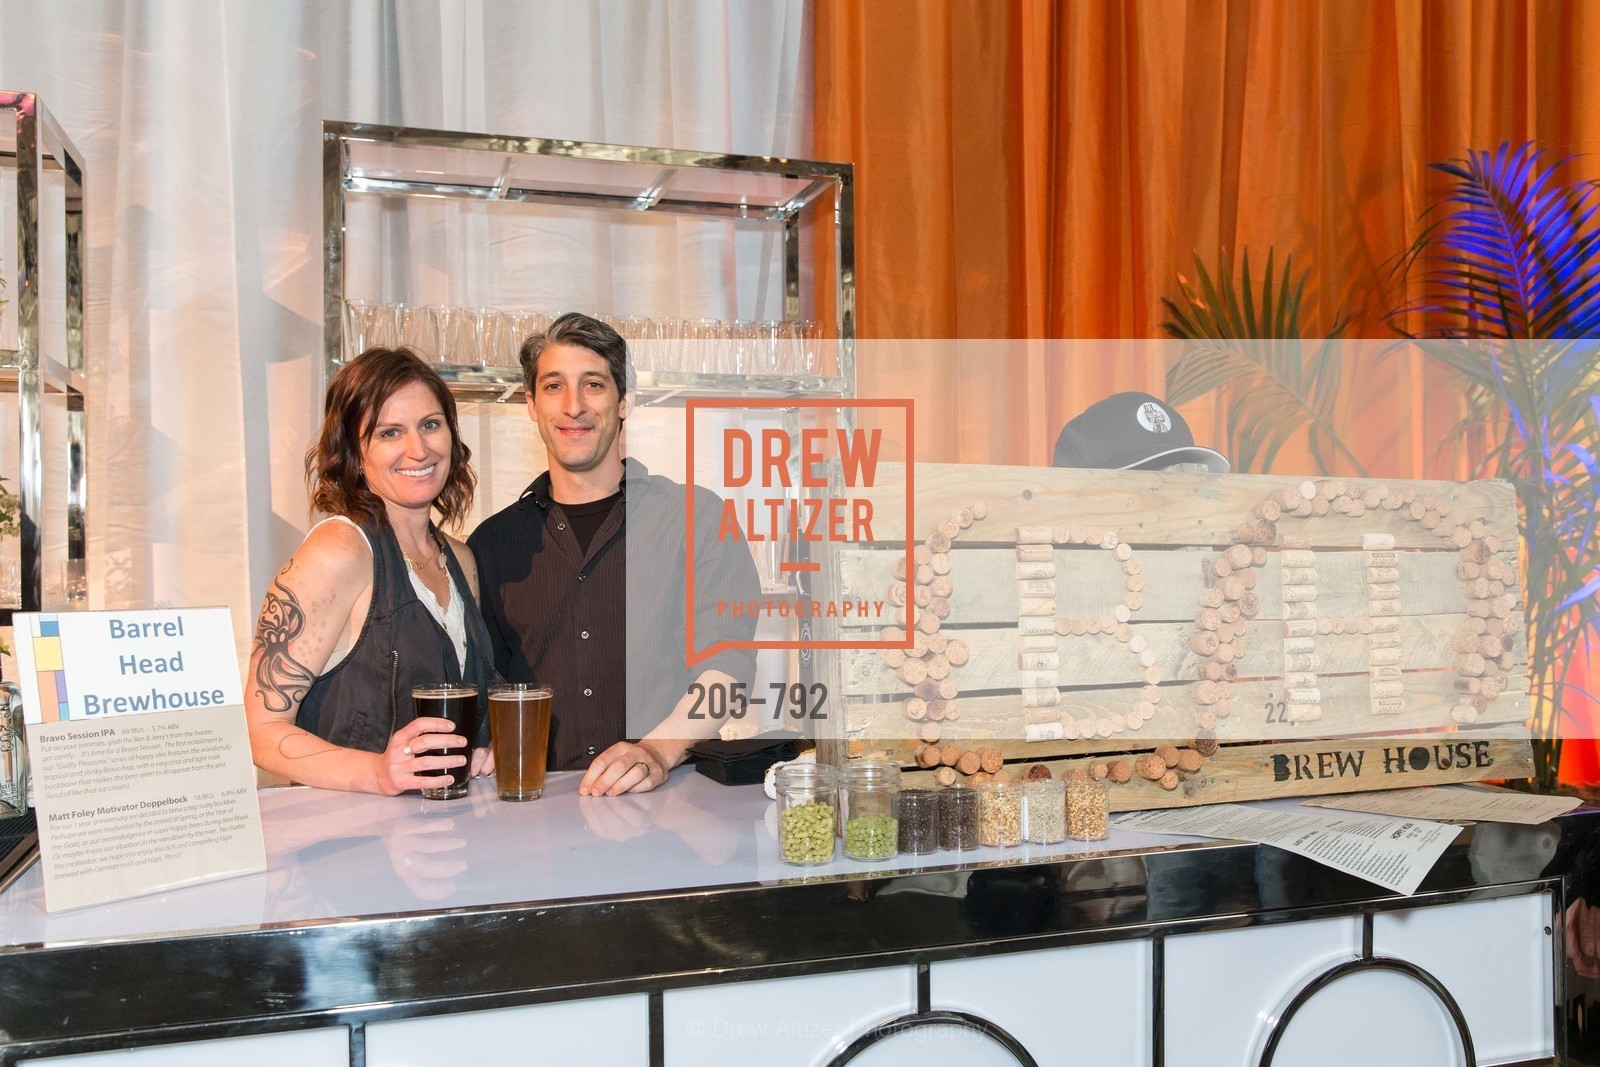 Barrel Head Brewhouse, MEALS ON WHEELS OF SAN FRANCISCO'S 28th Annual Star Chefs and Vintners Gala, US, April 20th, 2015,Drew Altizer, Drew Altizer Photography, full-service agency, private events, San Francisco photographer, photographer california